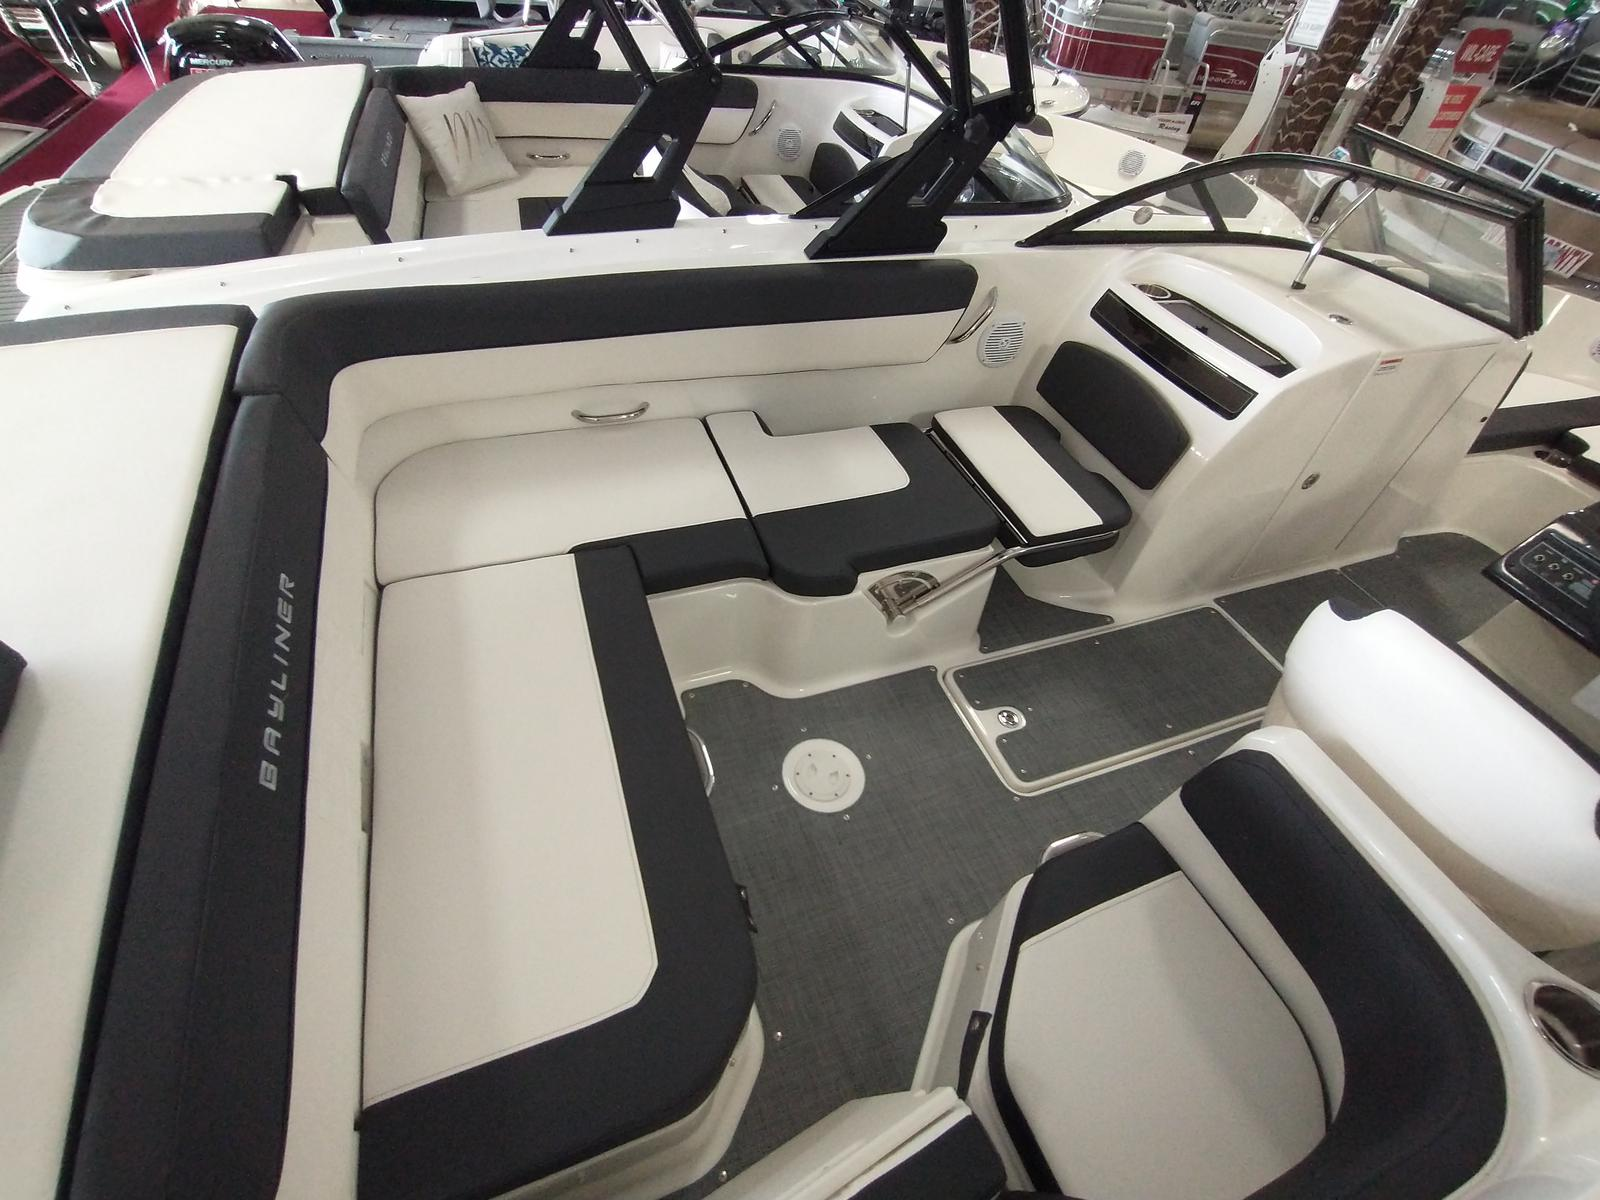 2021 Bayliner boat for sale, model of the boat is VR6 Bowrider & Image # 5 of 10